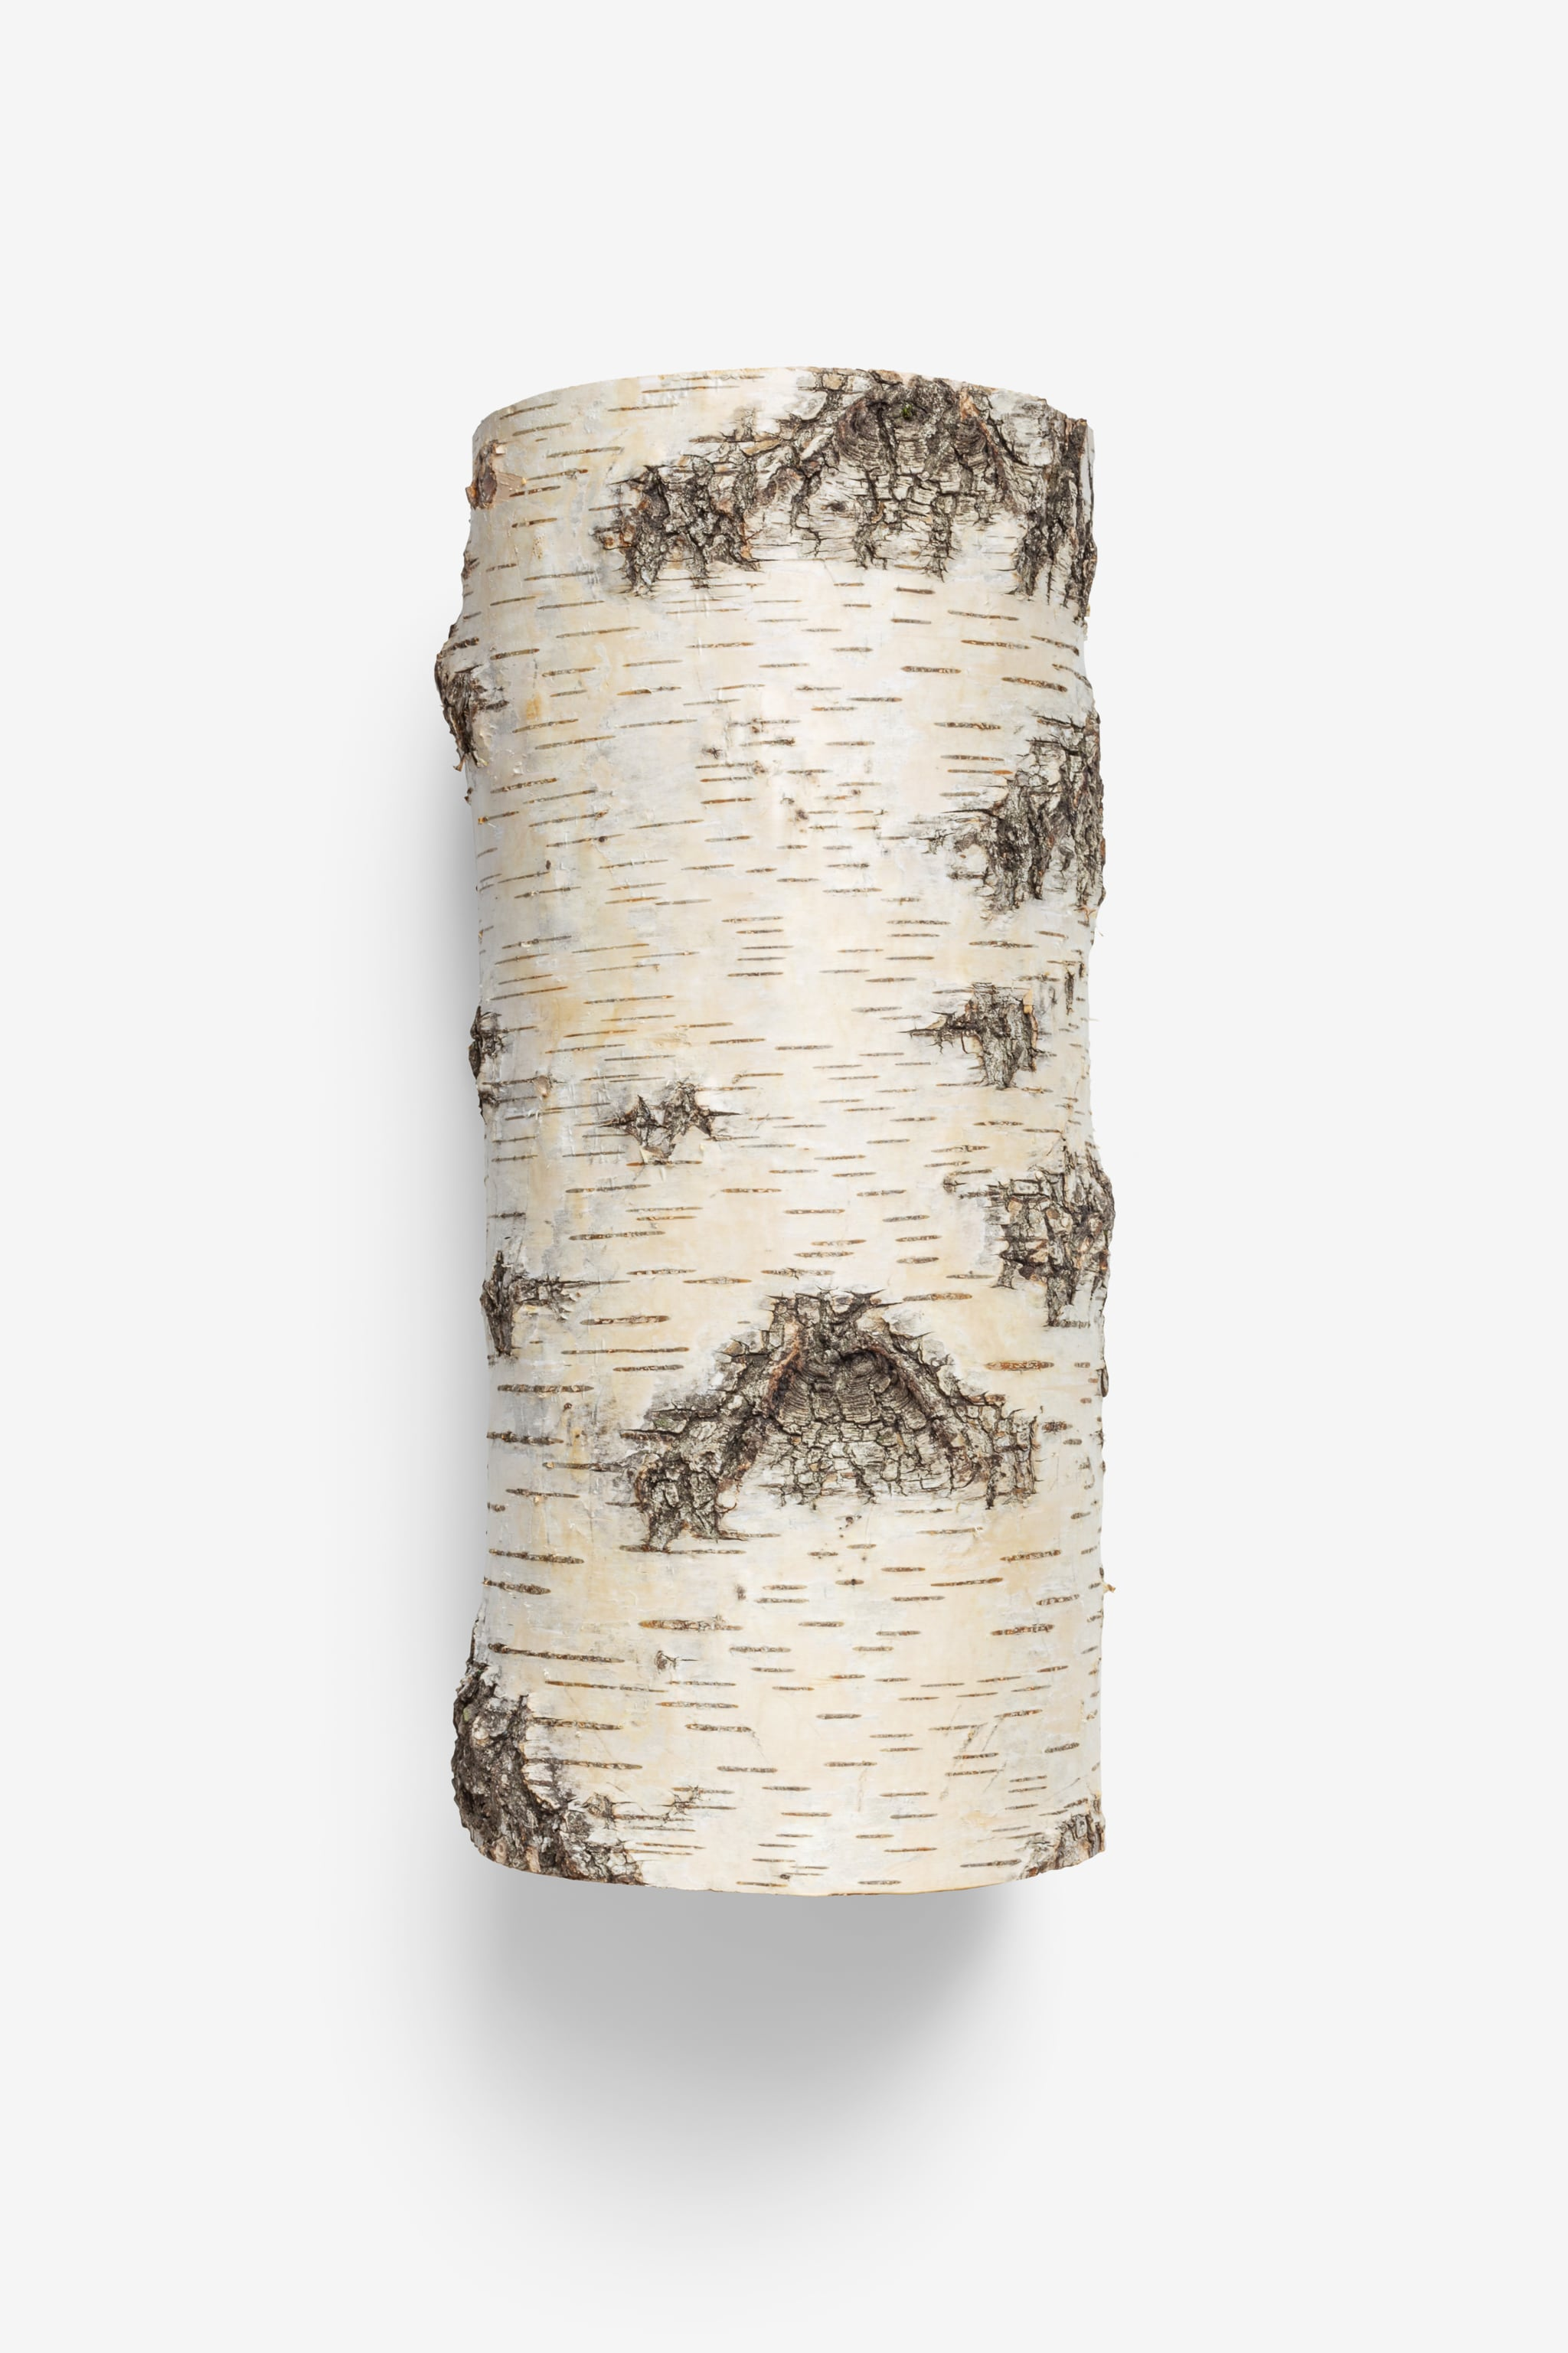 Clean Isolated PSD image of Birch log on transparent background with separated shadow